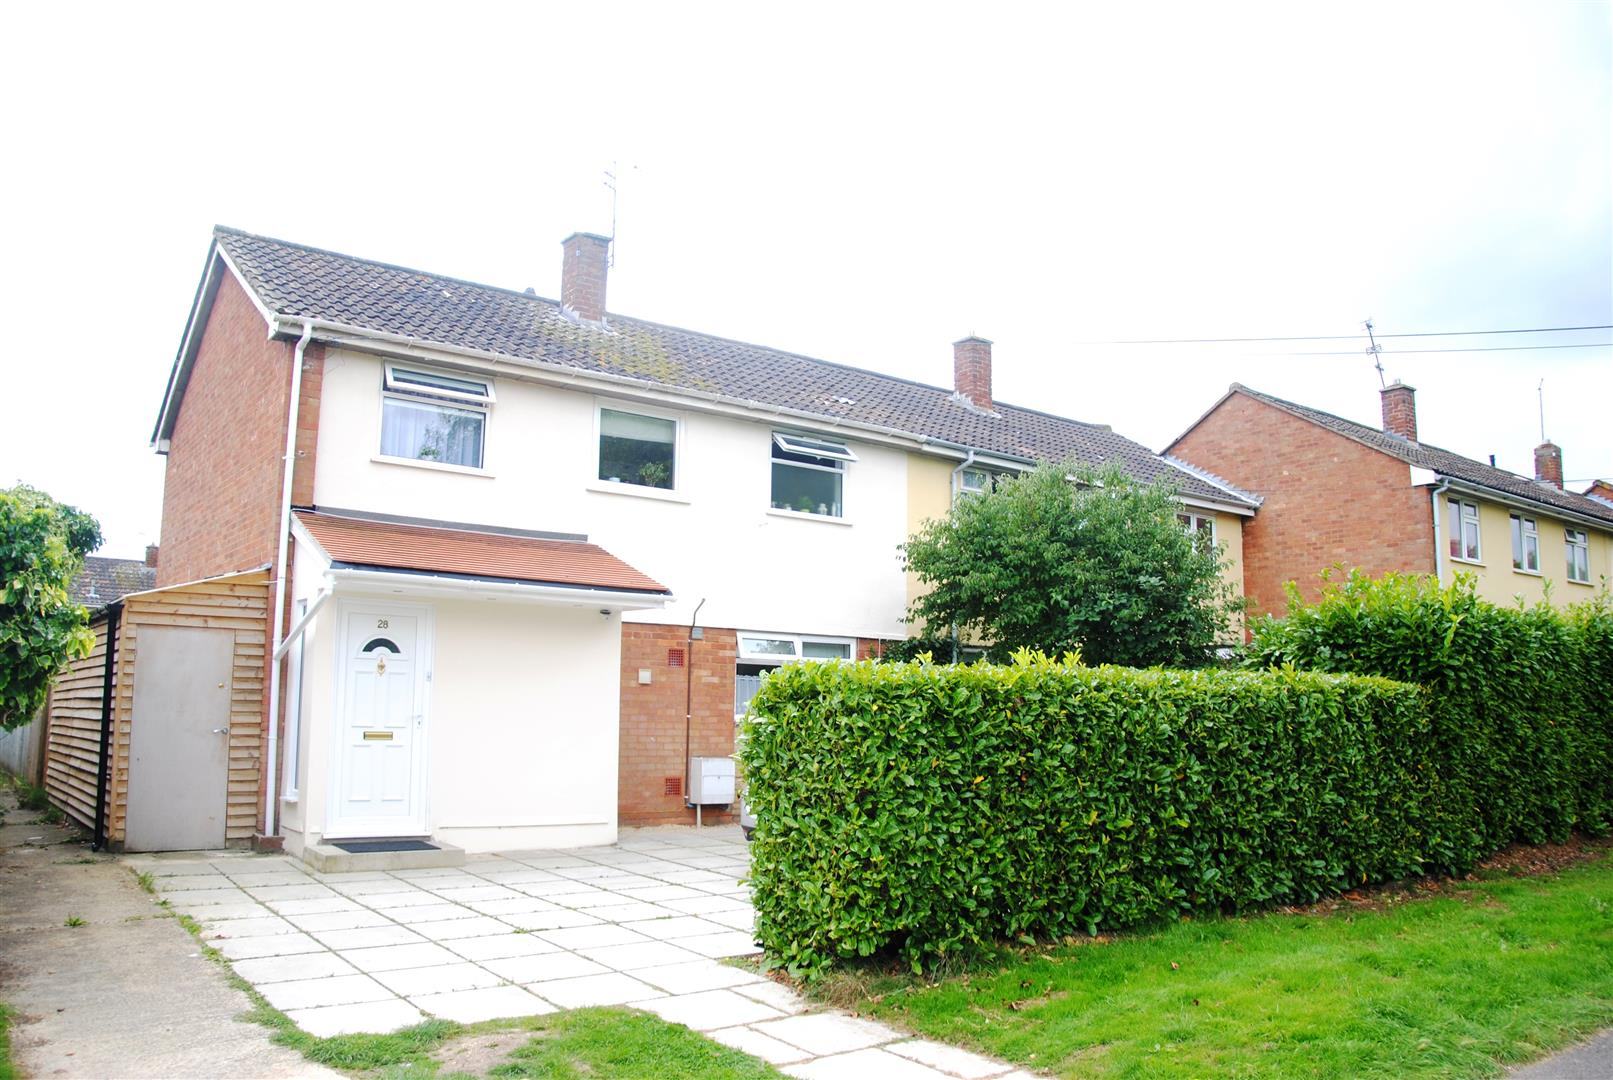 3 Bedrooms Terraced House for sale in Fareham Close, Park , Swindon